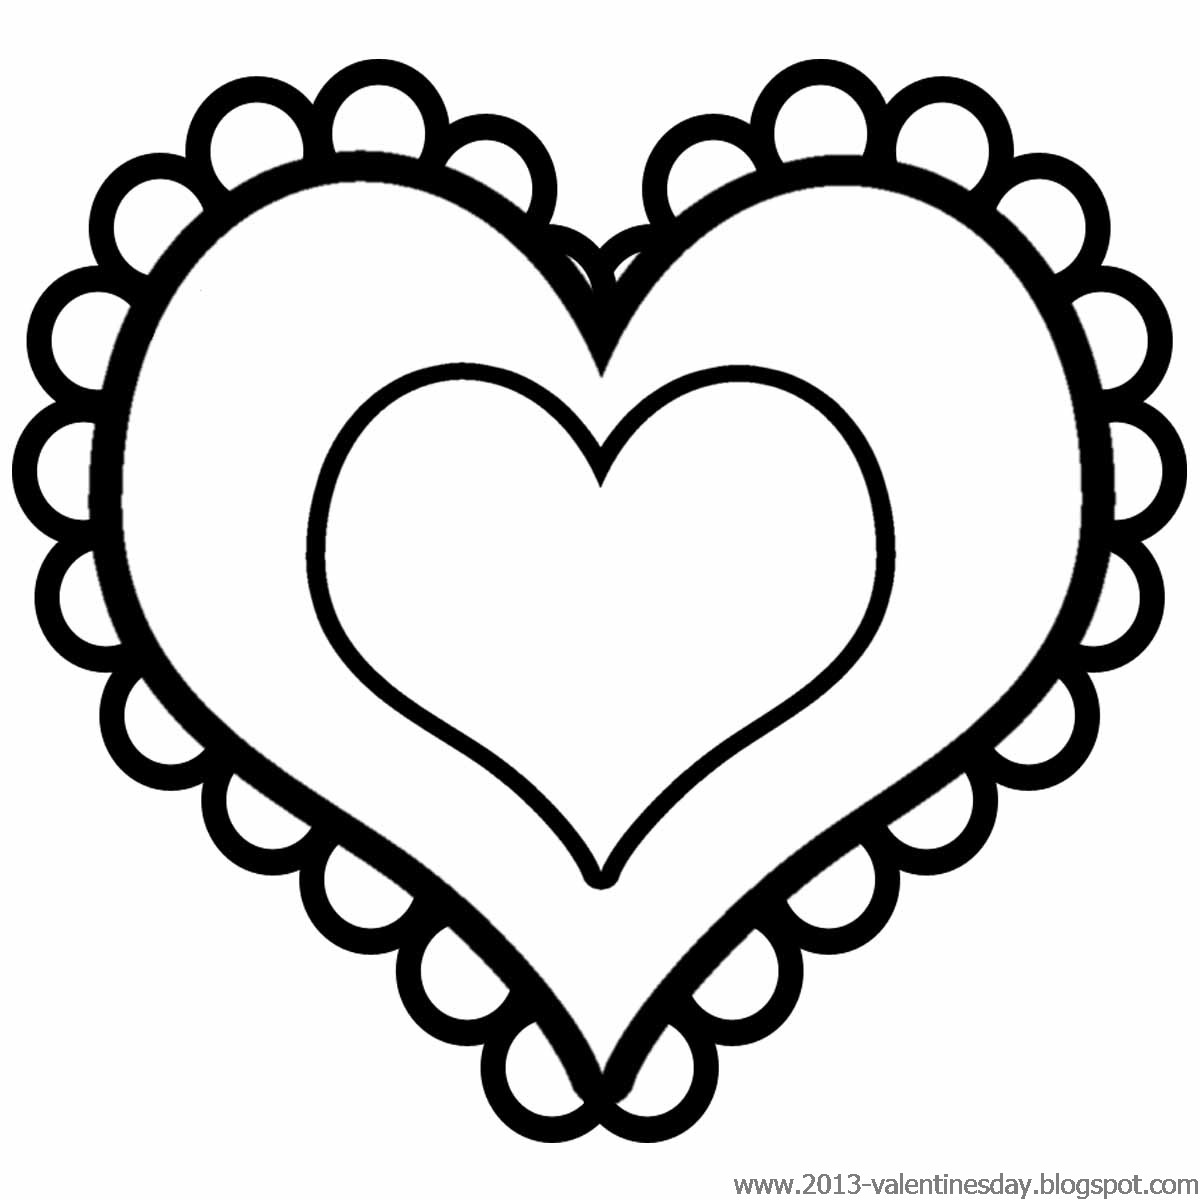 Black And White Valentine Heart Clipart Free.